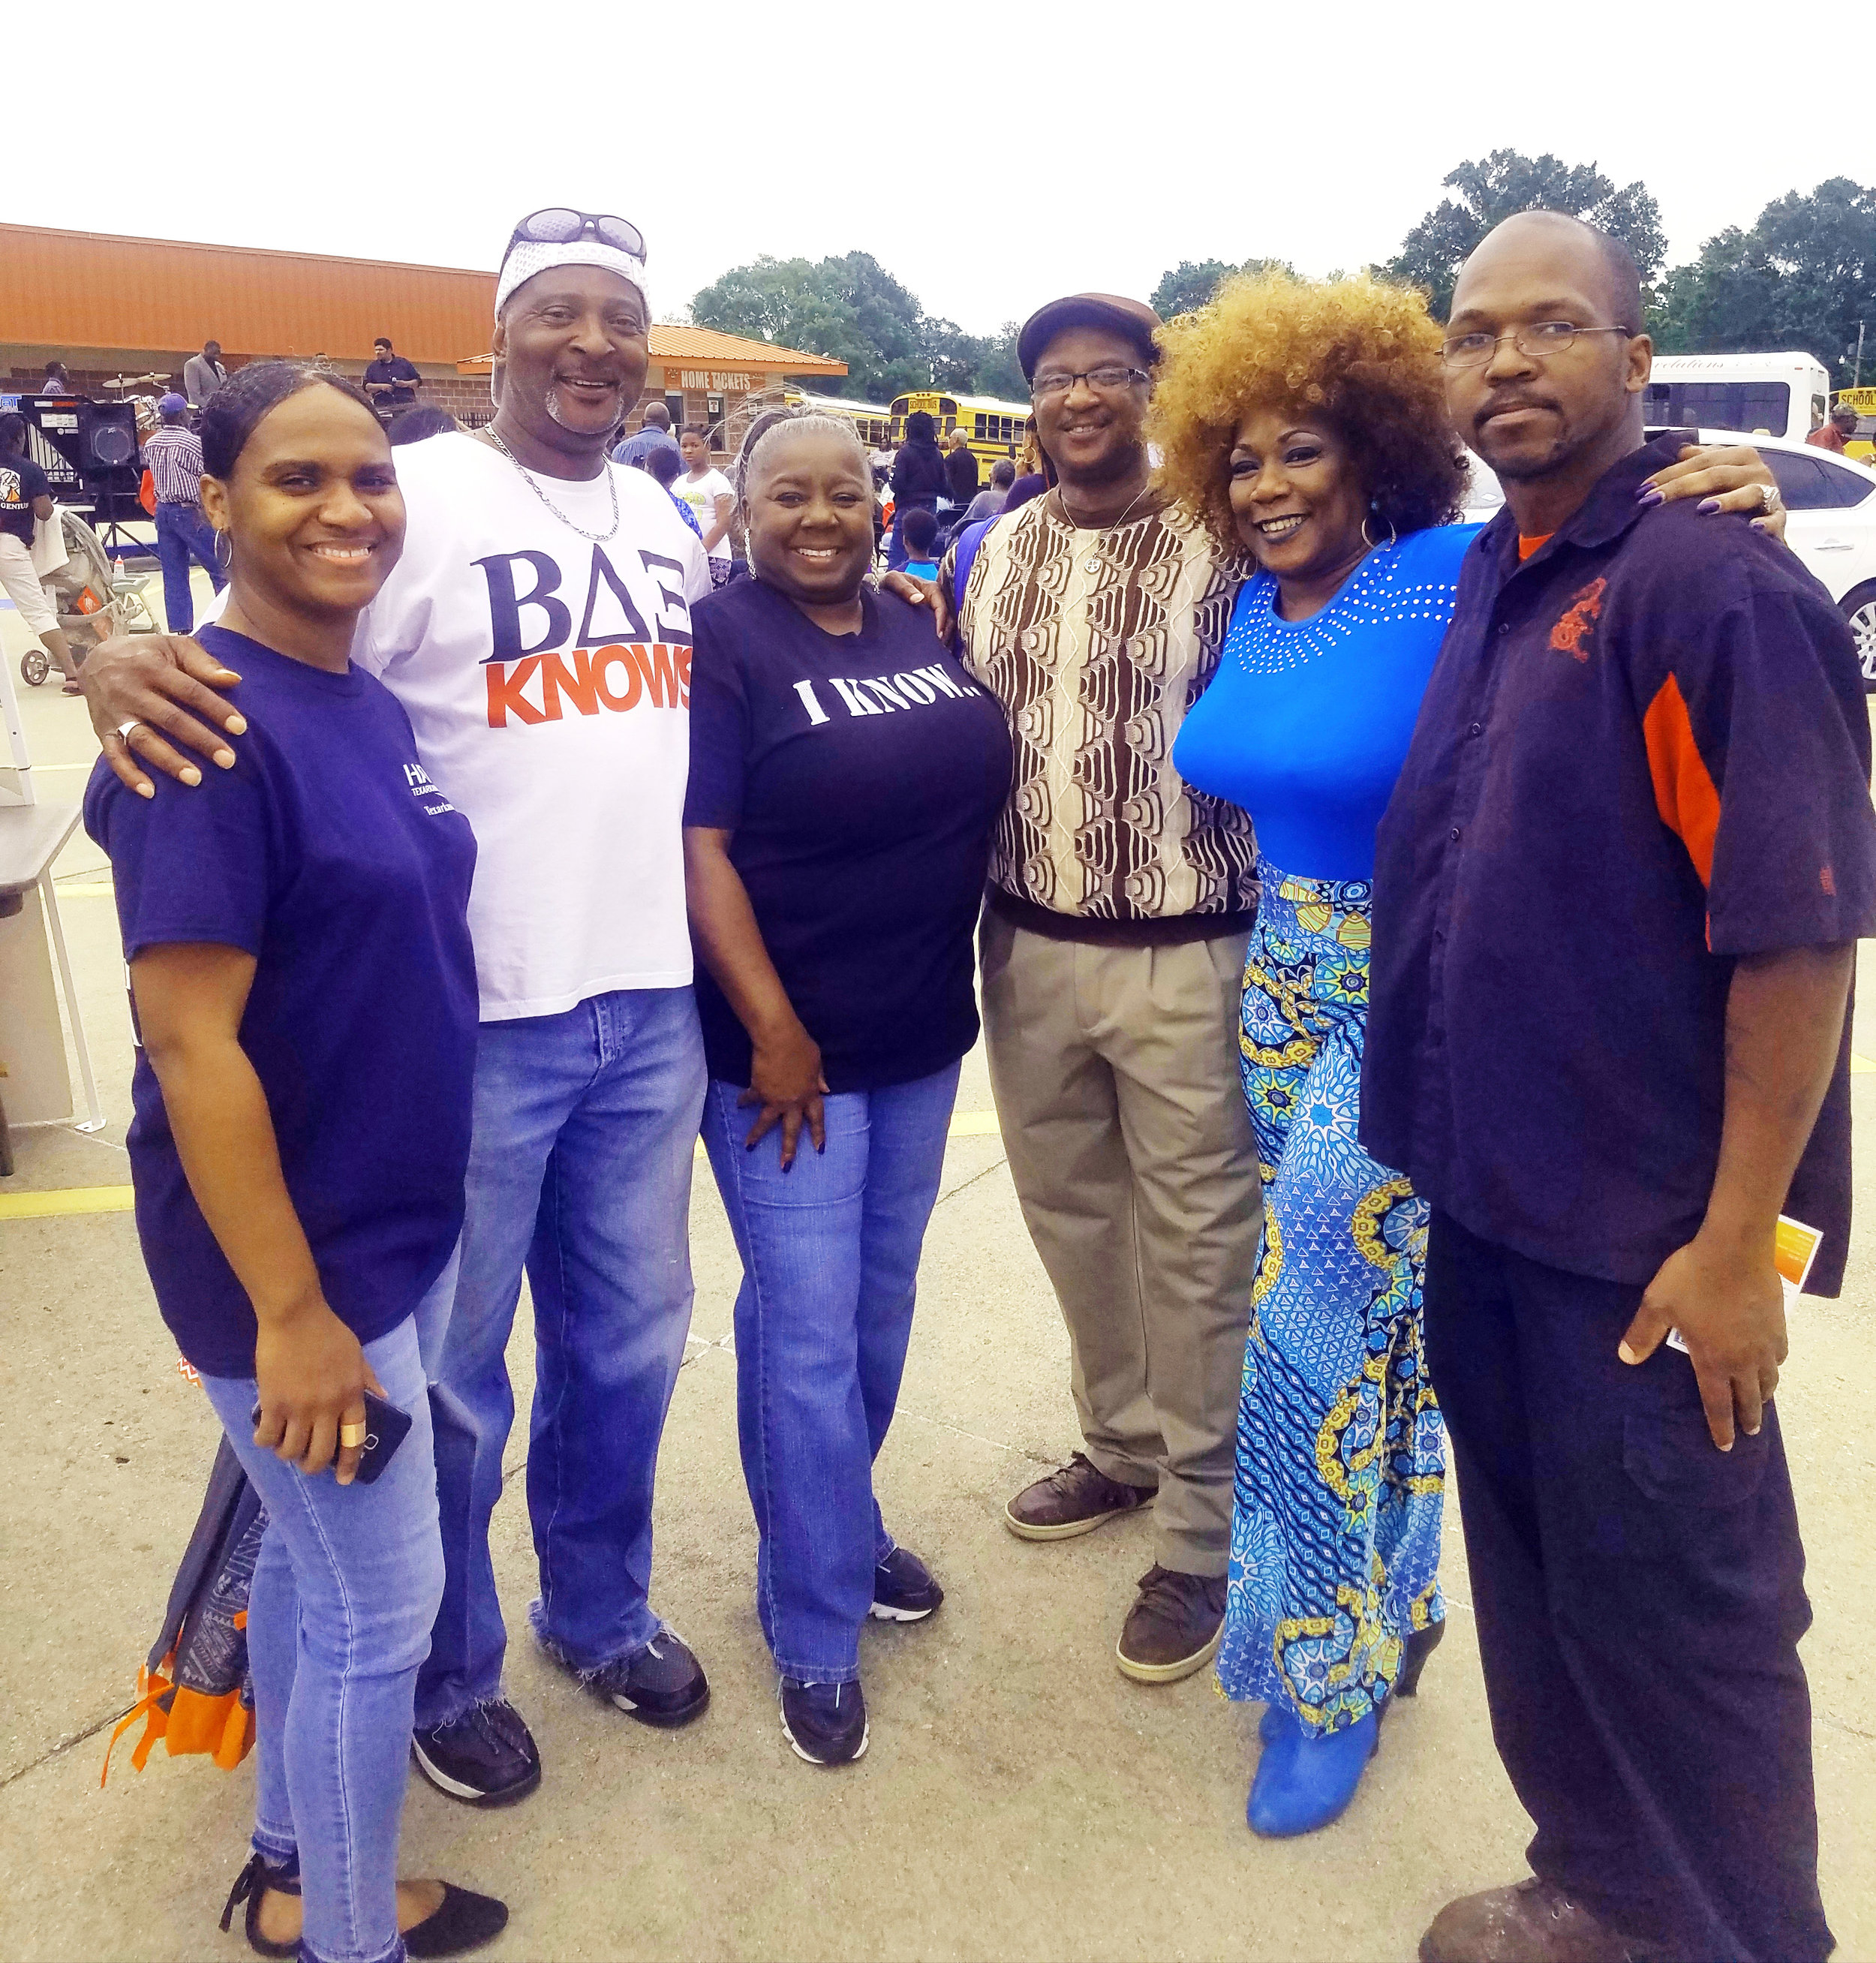 Tarisha Duson, James Craver, Jackie Callahan, Glen Craver, Bess Gamble Williams and Simmie Gamble